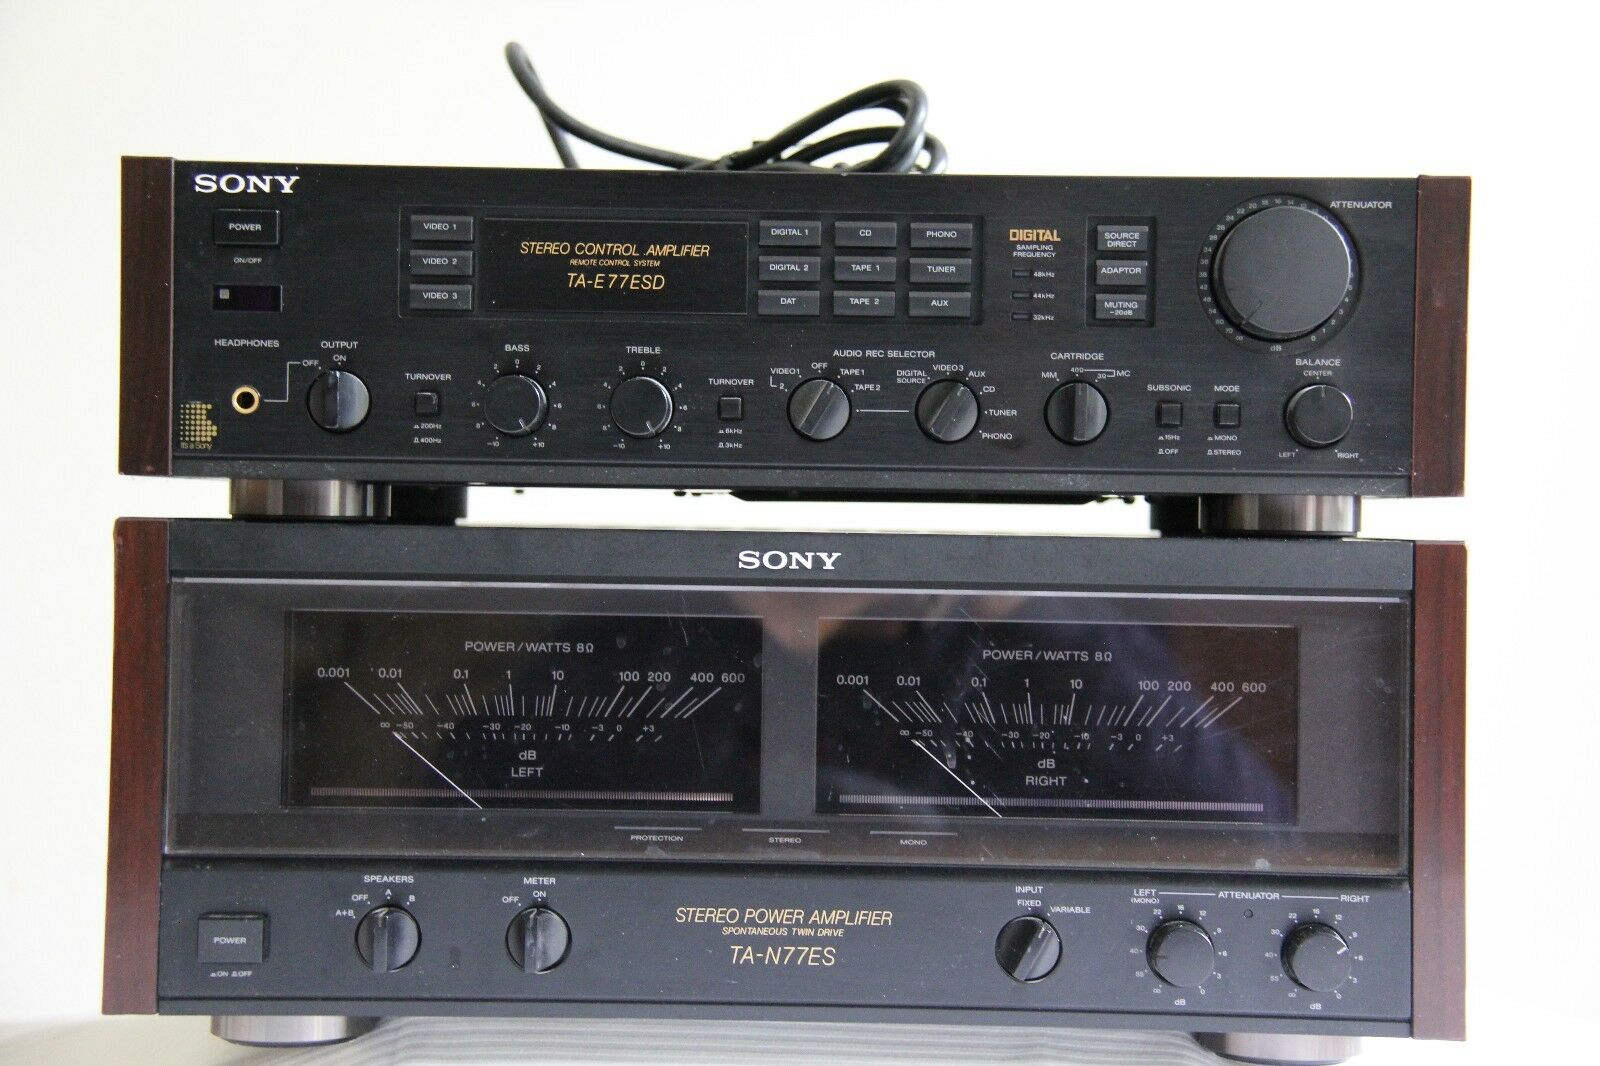 Sony Ta N77es Power Amplifier And E77esd Pre Wundr Shop 9 Pin Din Connector Wiring Diagram Klipsch Promedia Ultra 5 1 Thx 8